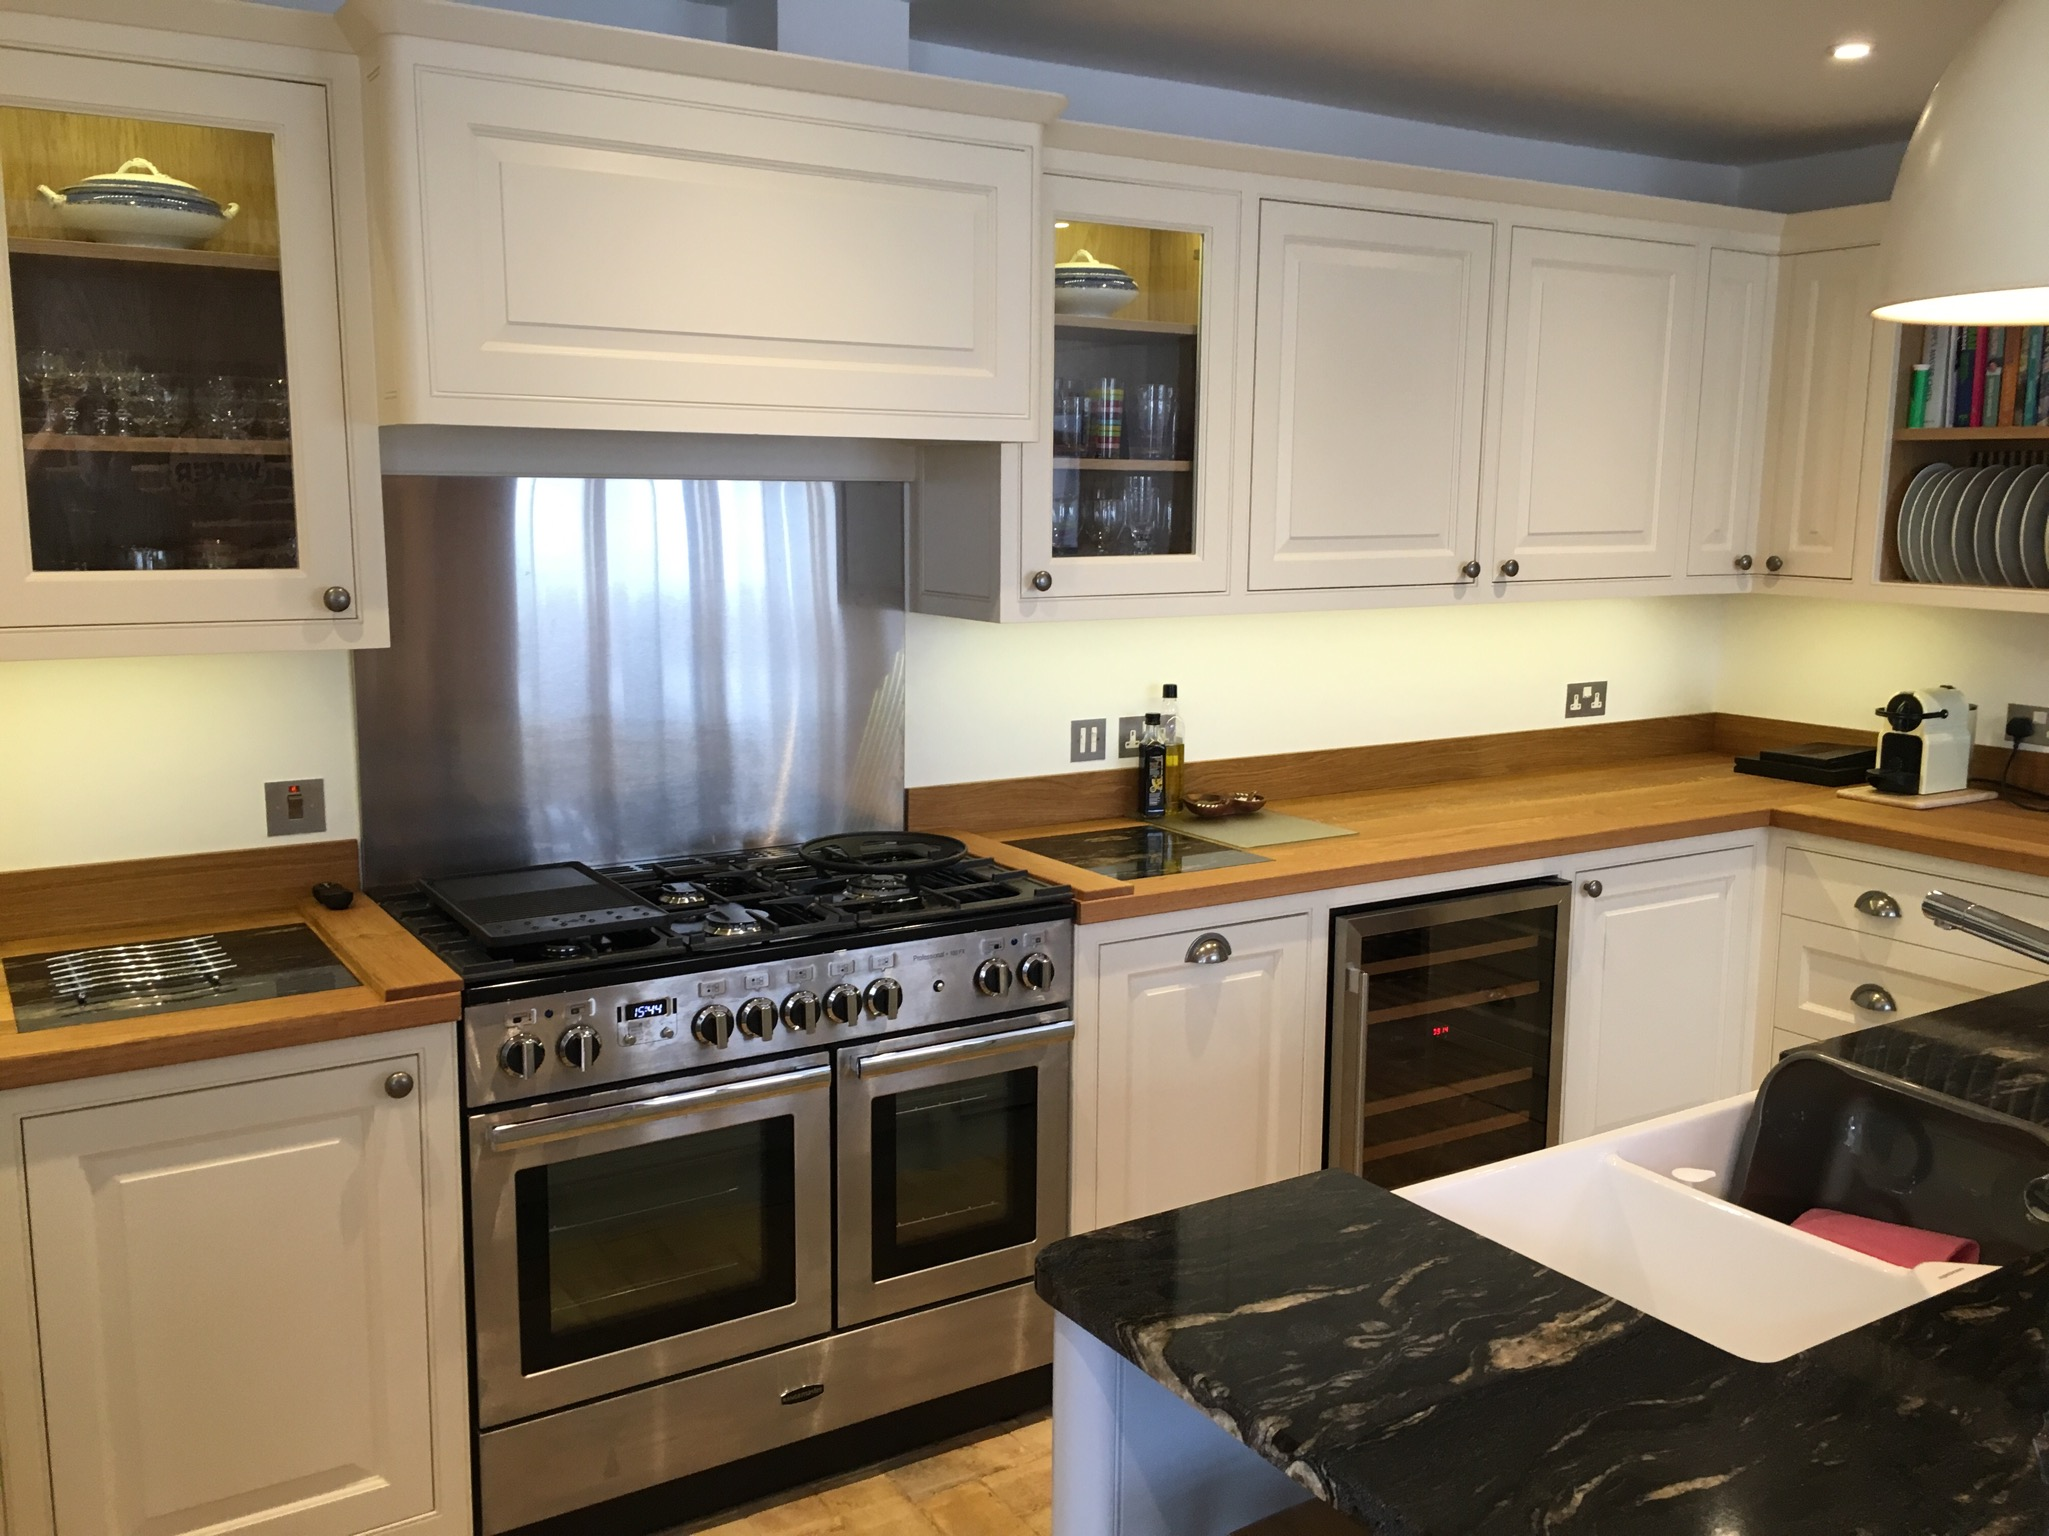 Oak Worktops with Rangemaster Cooker in Coconut House, Long Melford, Sudbury, Suffolk